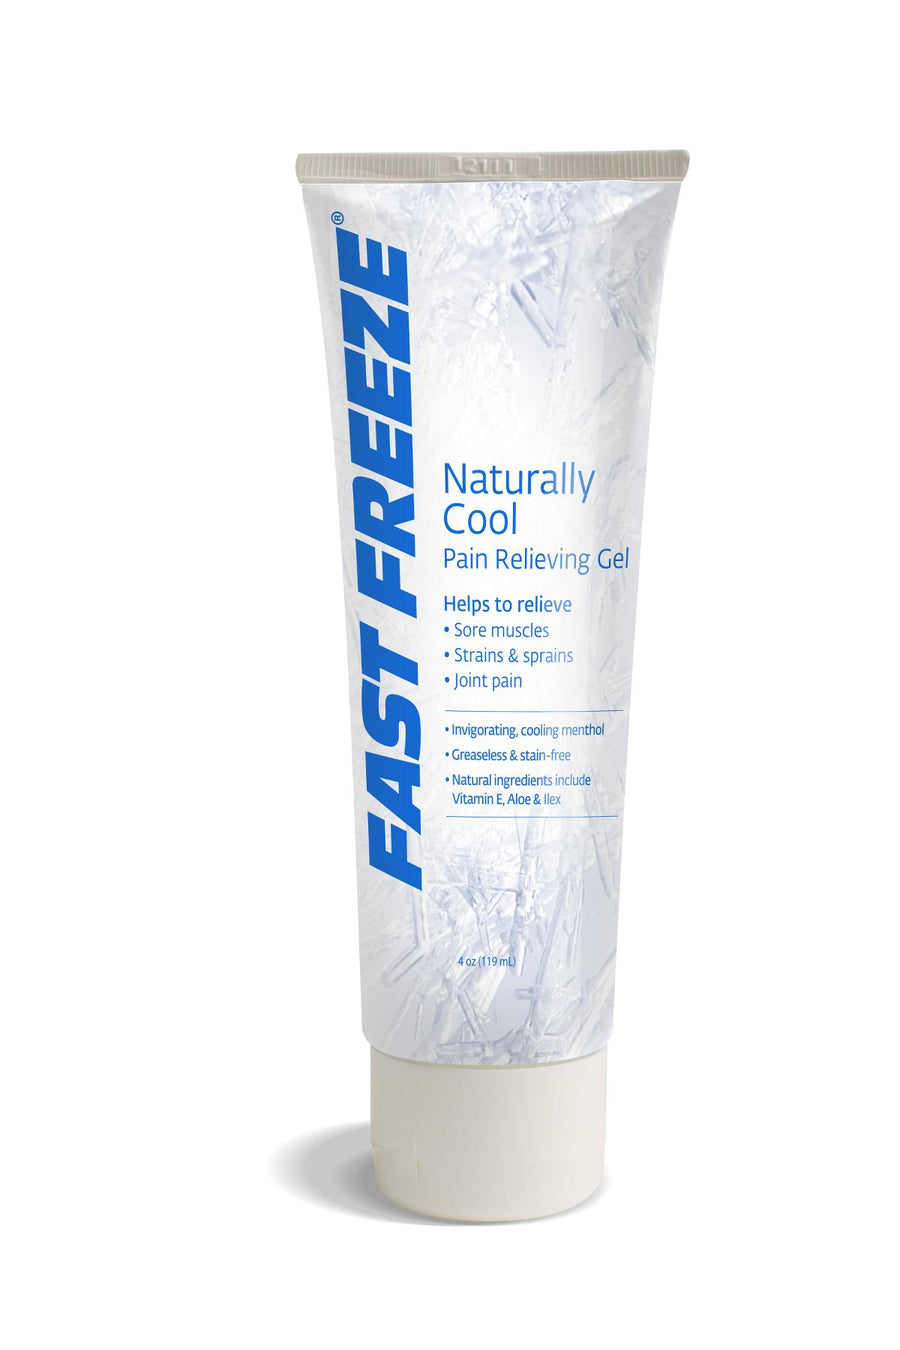 Fast Freeze Cold Therapy Pain Relief Gel,4.000 OZ, Each